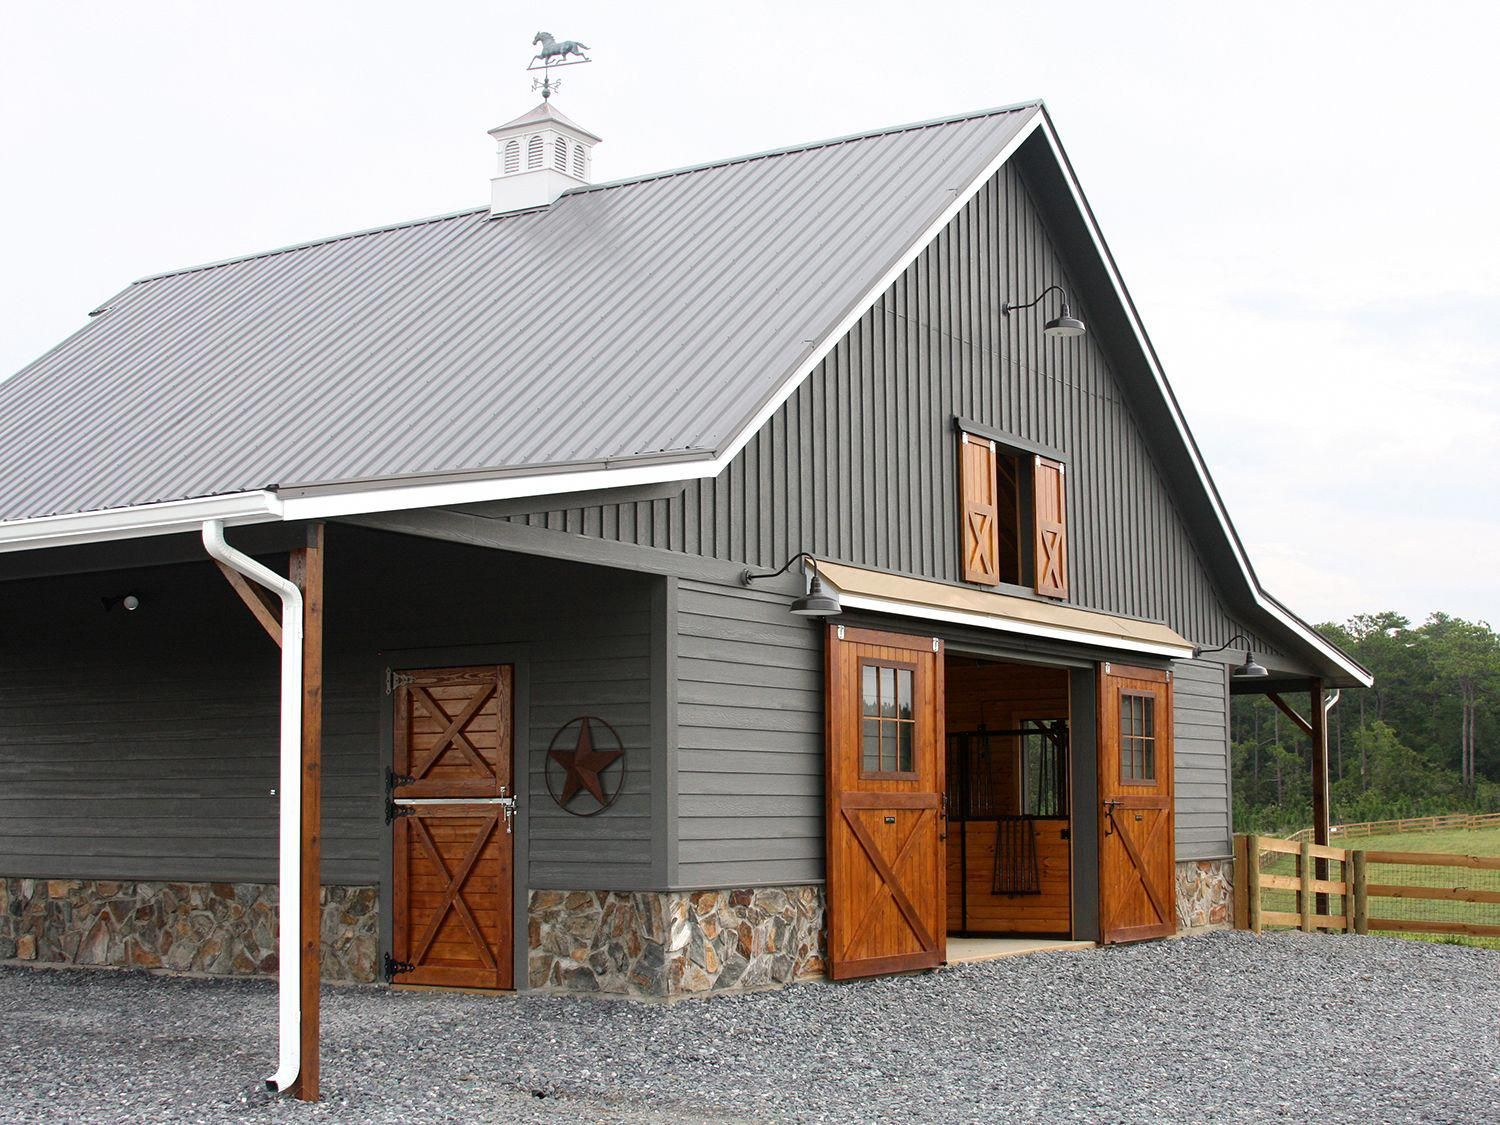 This Garage Door Hardware Is A Very Inspiring And Fantastic Idea Garagedoorhardware With Images Barn Renovation Barn Shop Barn With Living Quarters